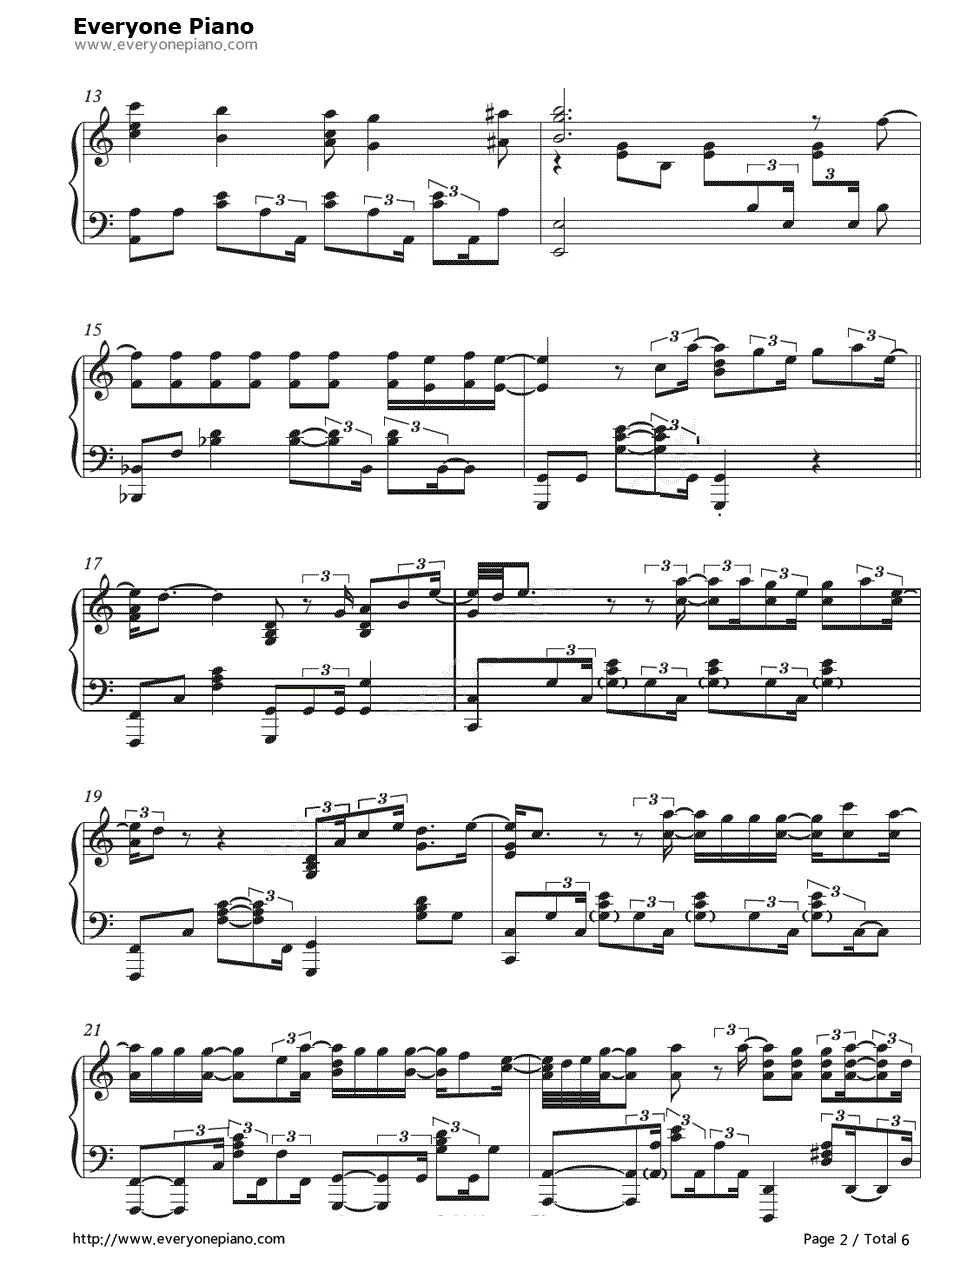 When I Was Your Man-Bruno Mars Stave Preview 2-Free Piano Sheet Music u0026 Piano Chords